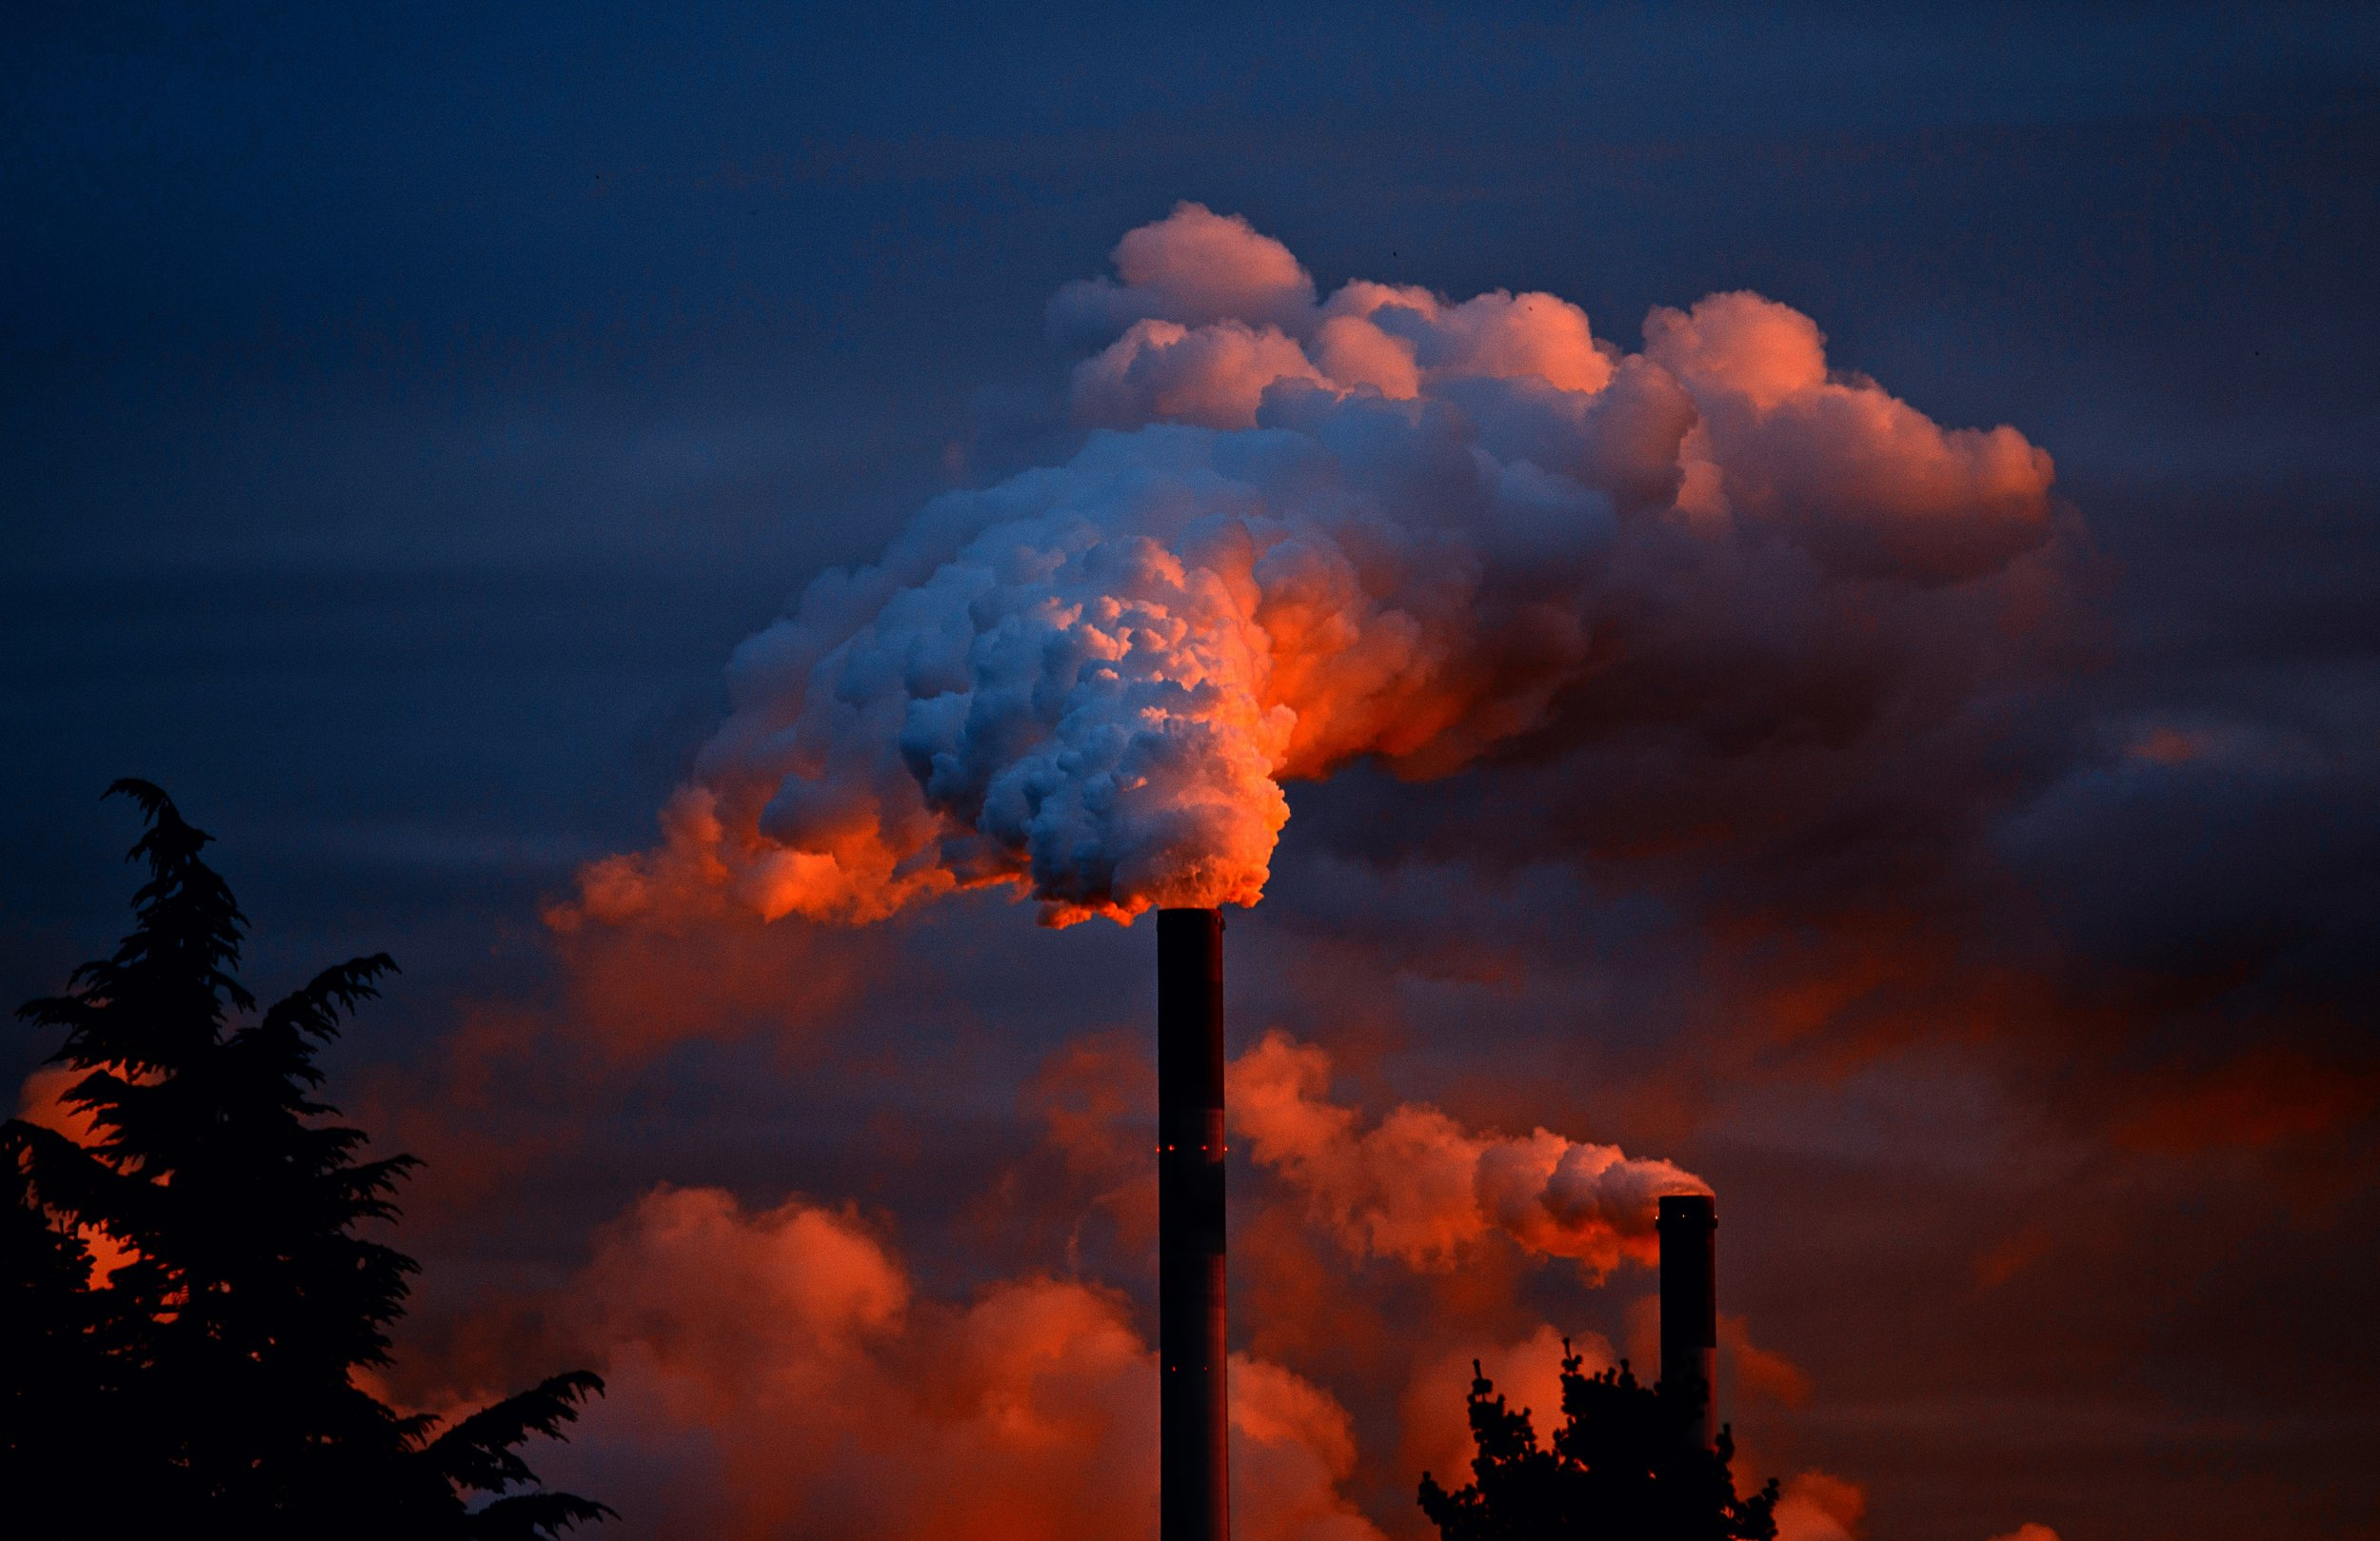 why don't more people care about climate change